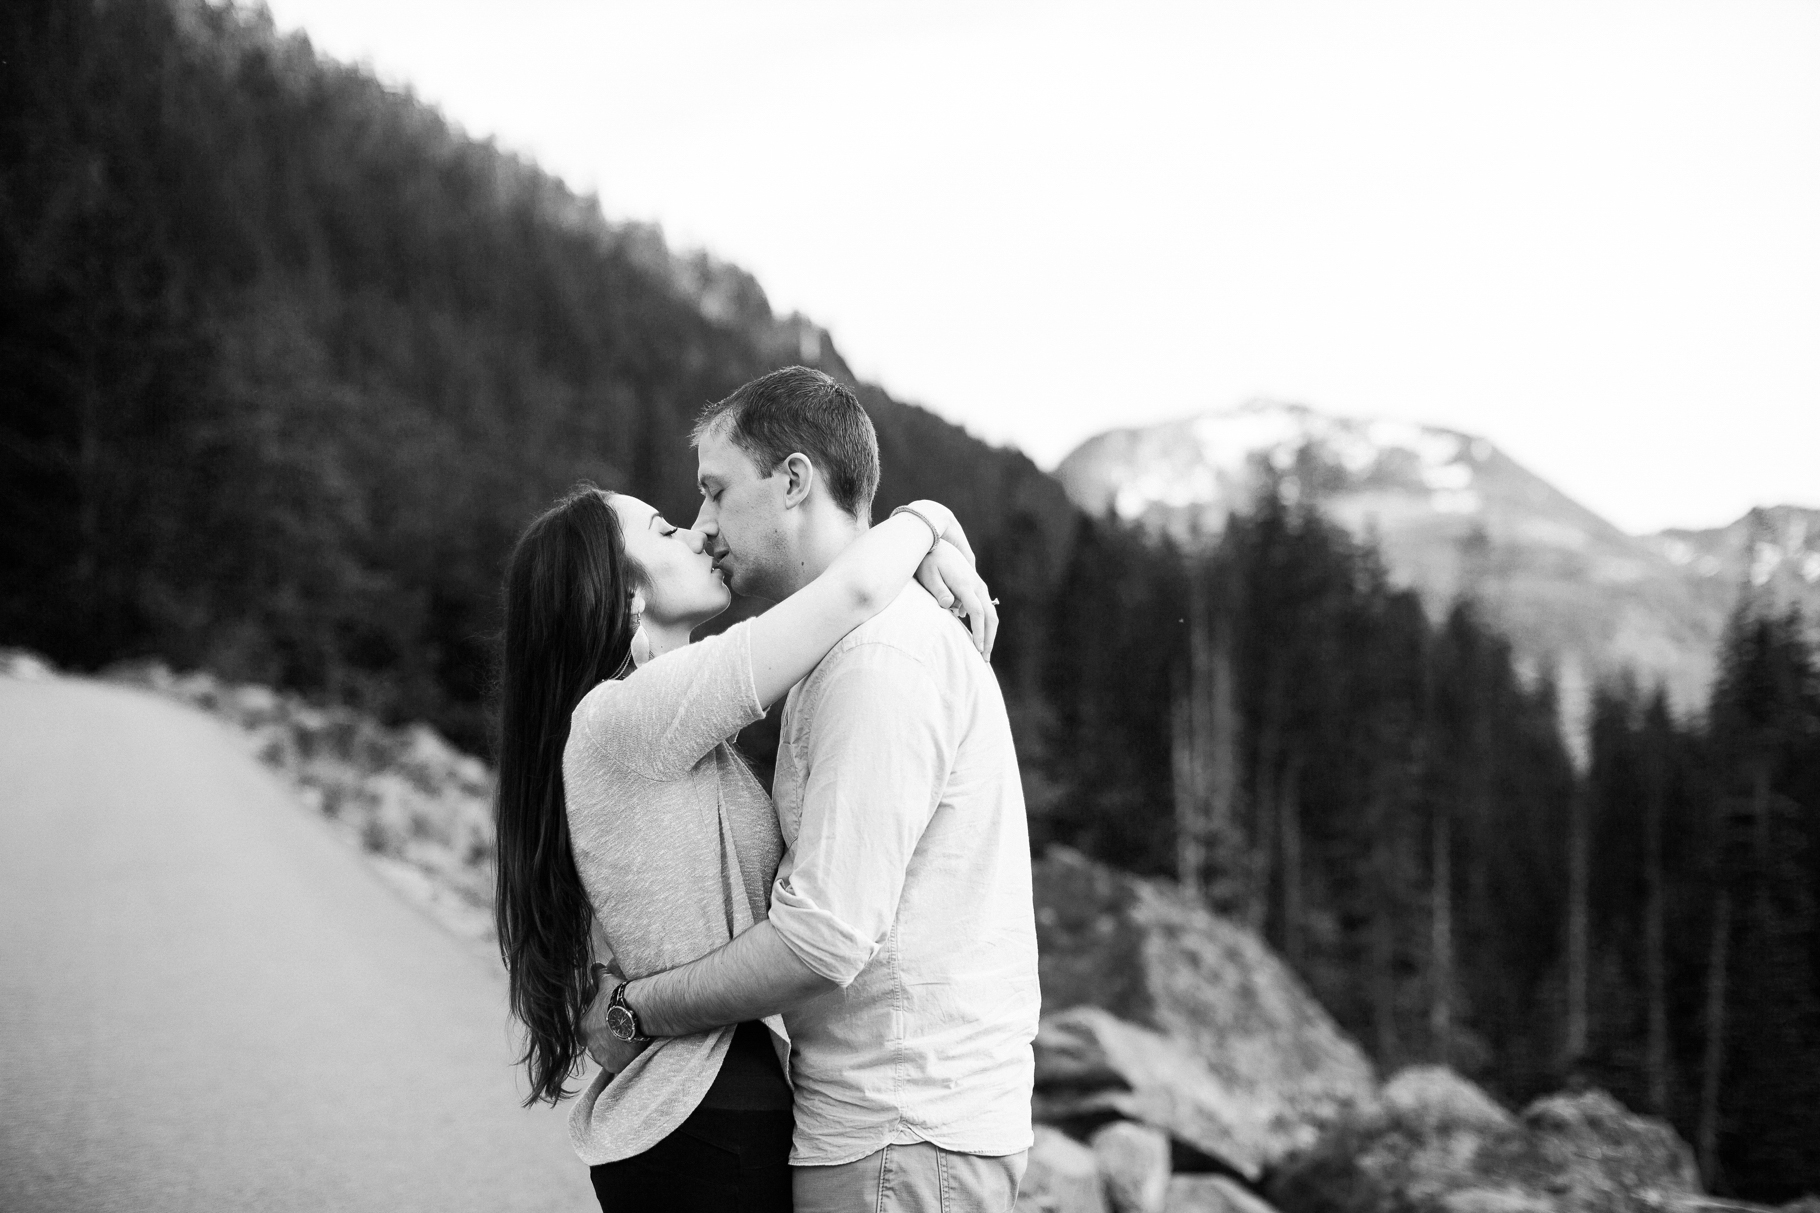 11-Franklin-Falls-Engagement-Mountain-Northwest-Photography-Snoqualmie-Seattle-Wedding-Photographer